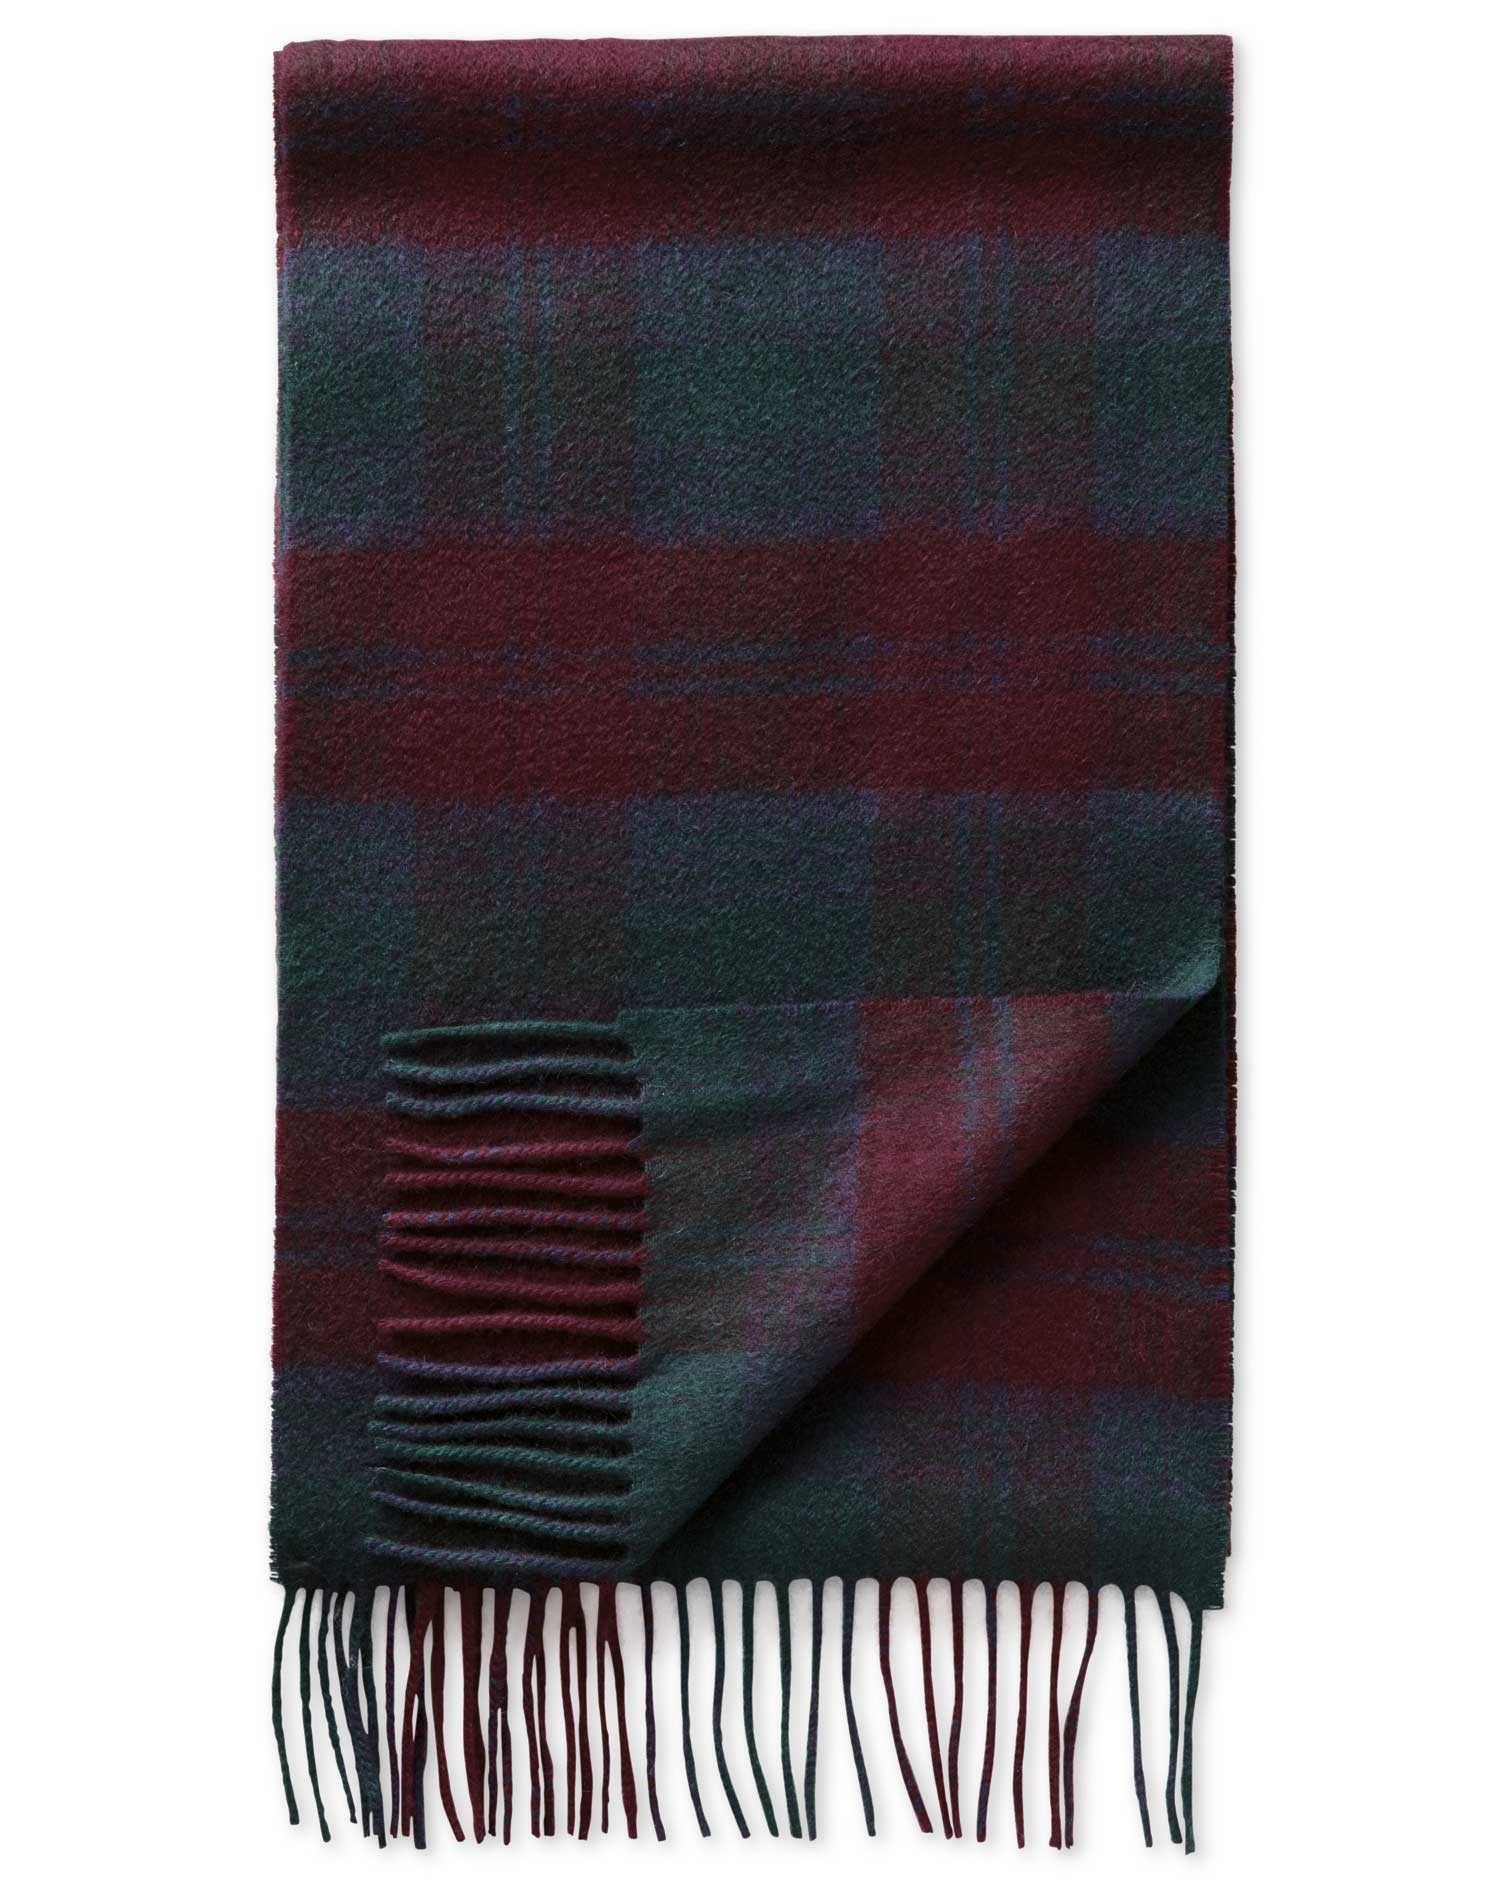 Burgundy Check Cashmere Scarf by Charles Tyrwhitt